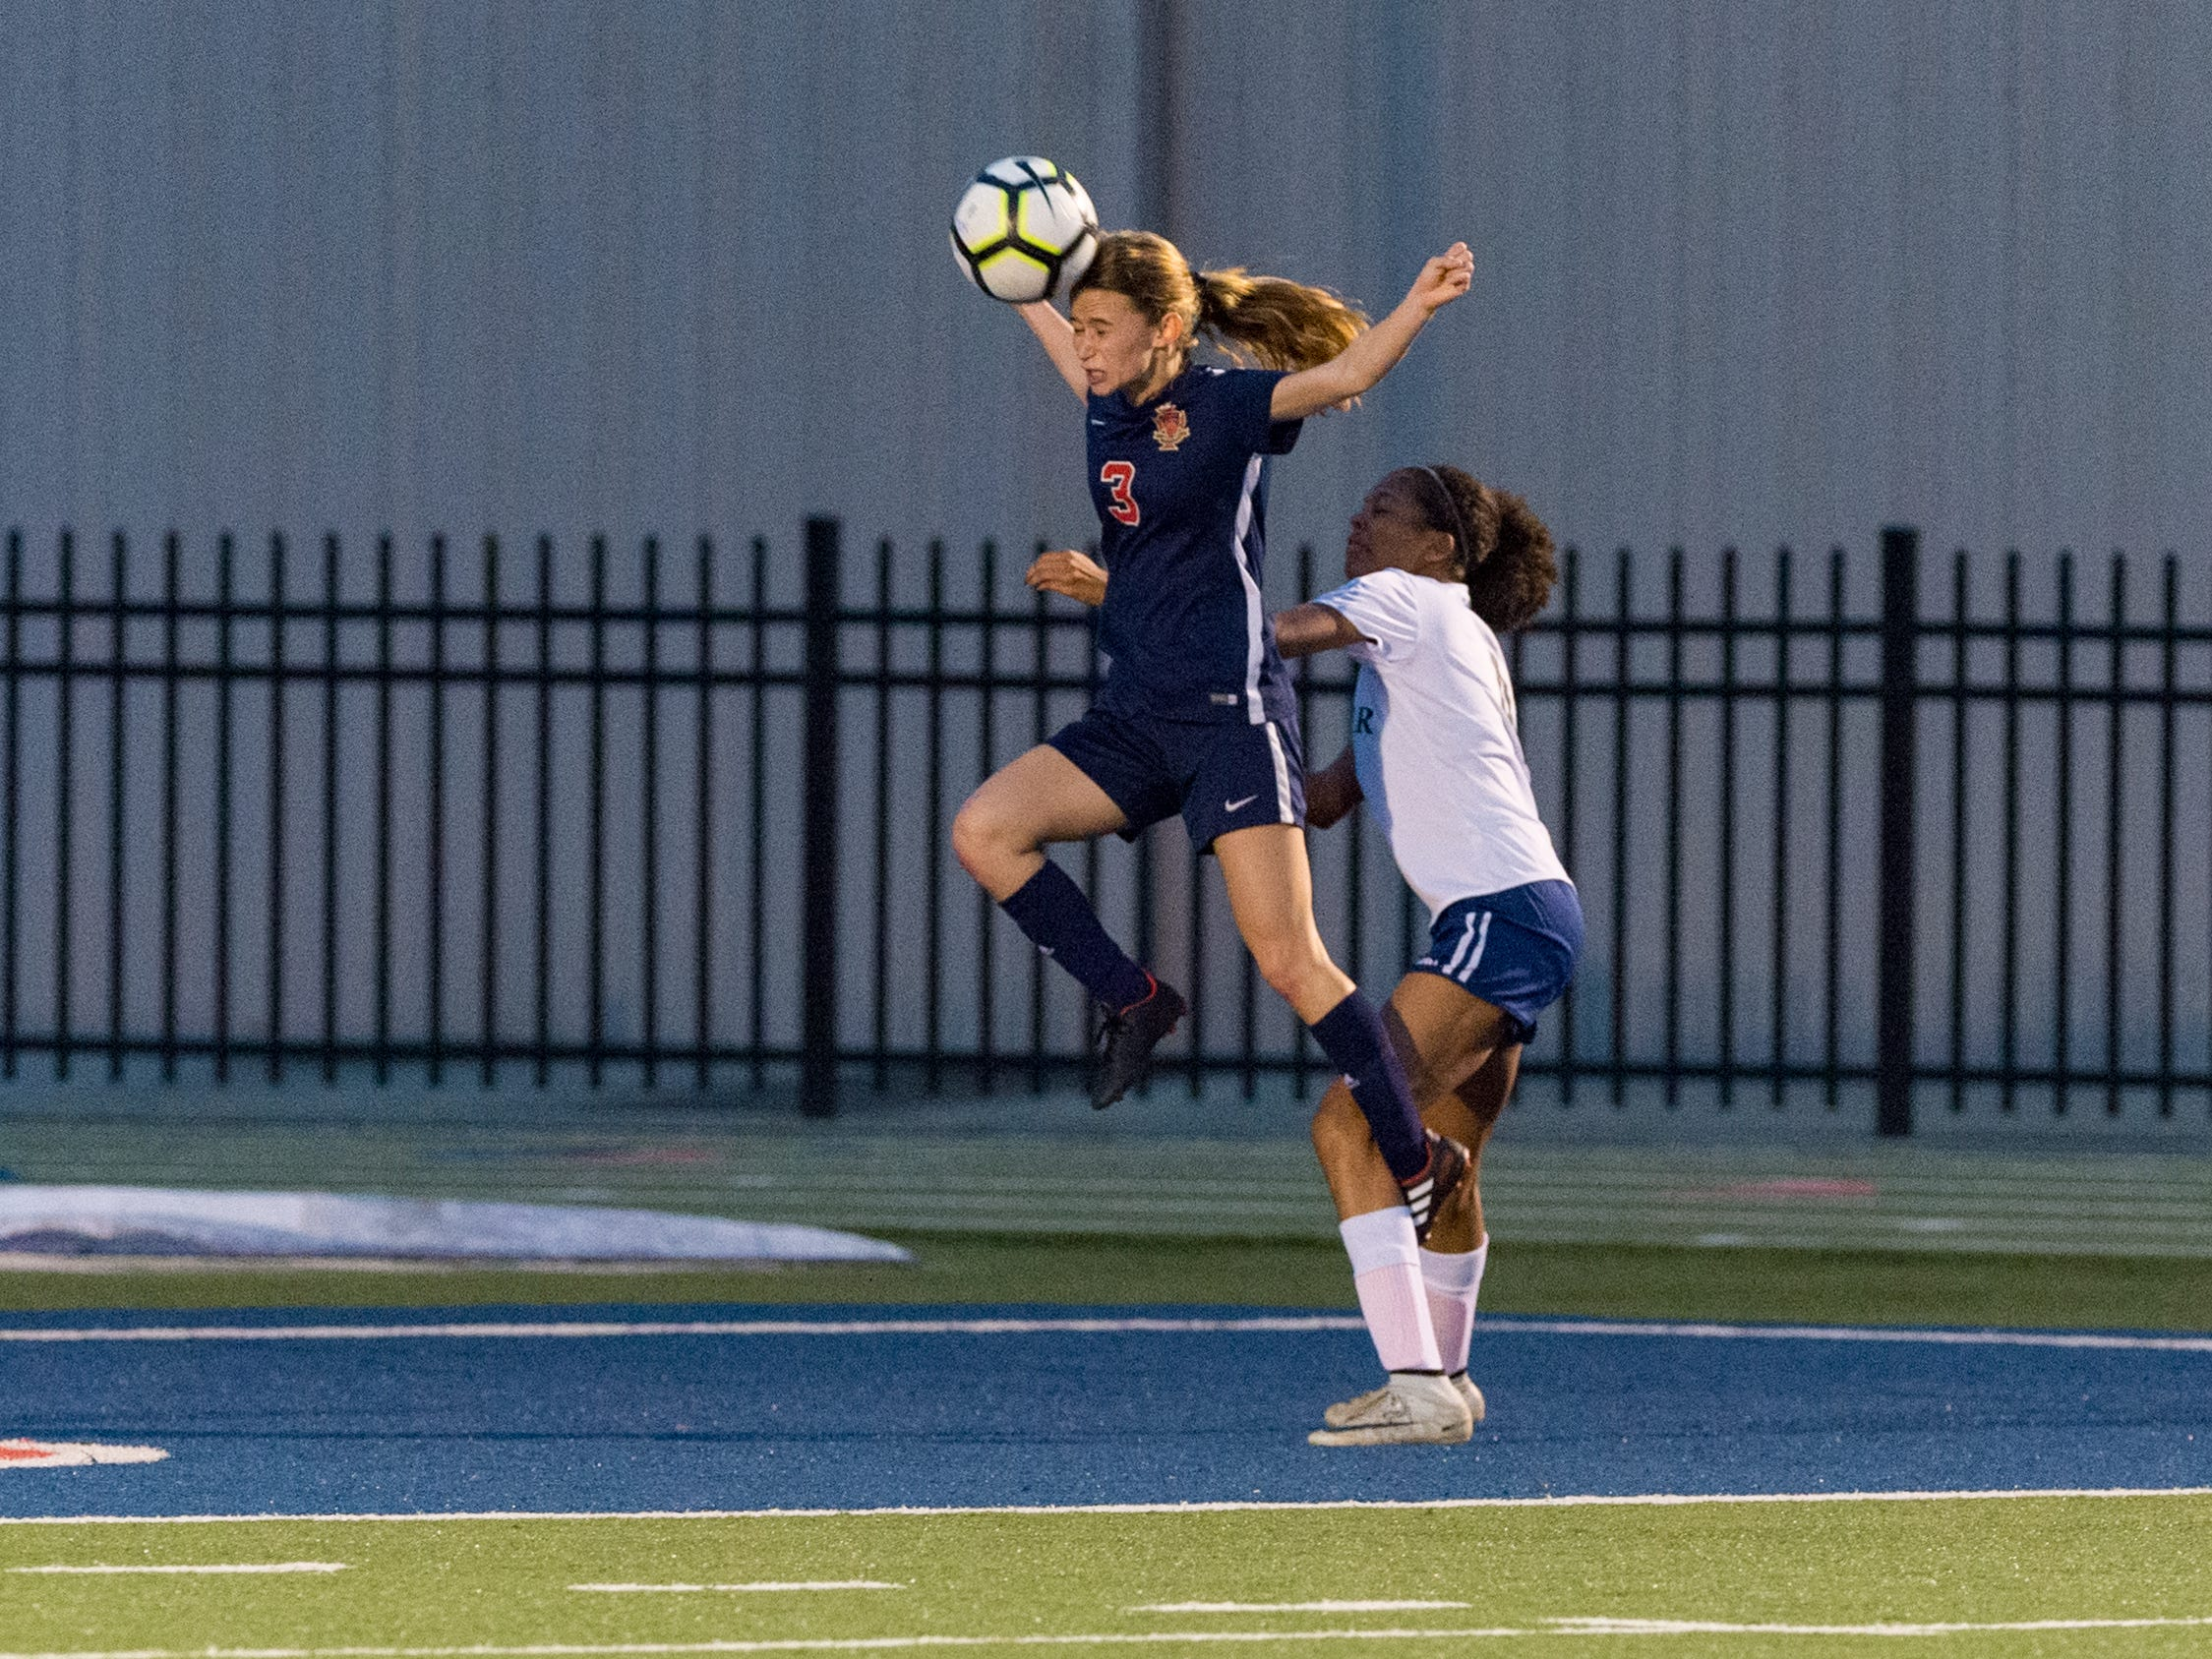 Emily Sonnier header as Teurlings Catholic shuts out Lutcher 8-0 in the second round of the LHSAA soccer playoffs.  Tuesday, Feb. 5, 2019.